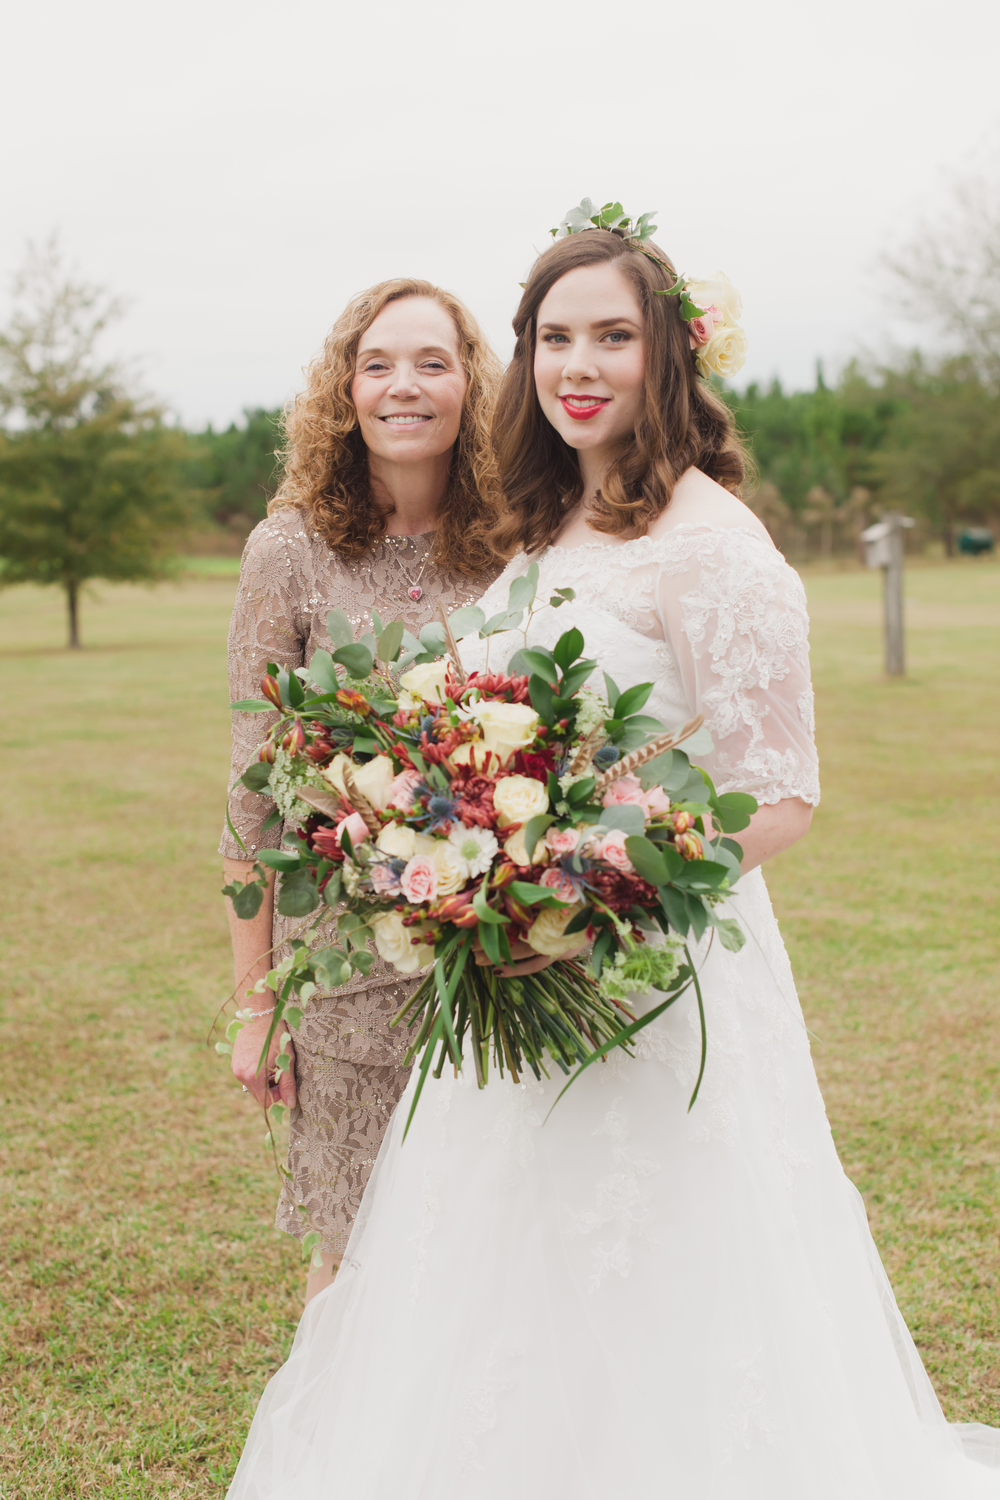 Ng-Photography-backyard-wedding-royal-hair-and-makeup-ivory-and-beau-wedding-planning-wedding-flowers-savannah-florist-savannah-flowers-savannah-weddings-savannah-wedding-savannah-event-planner-savannah-wedding-planner-savannah-rustic-wedding-8.jpg